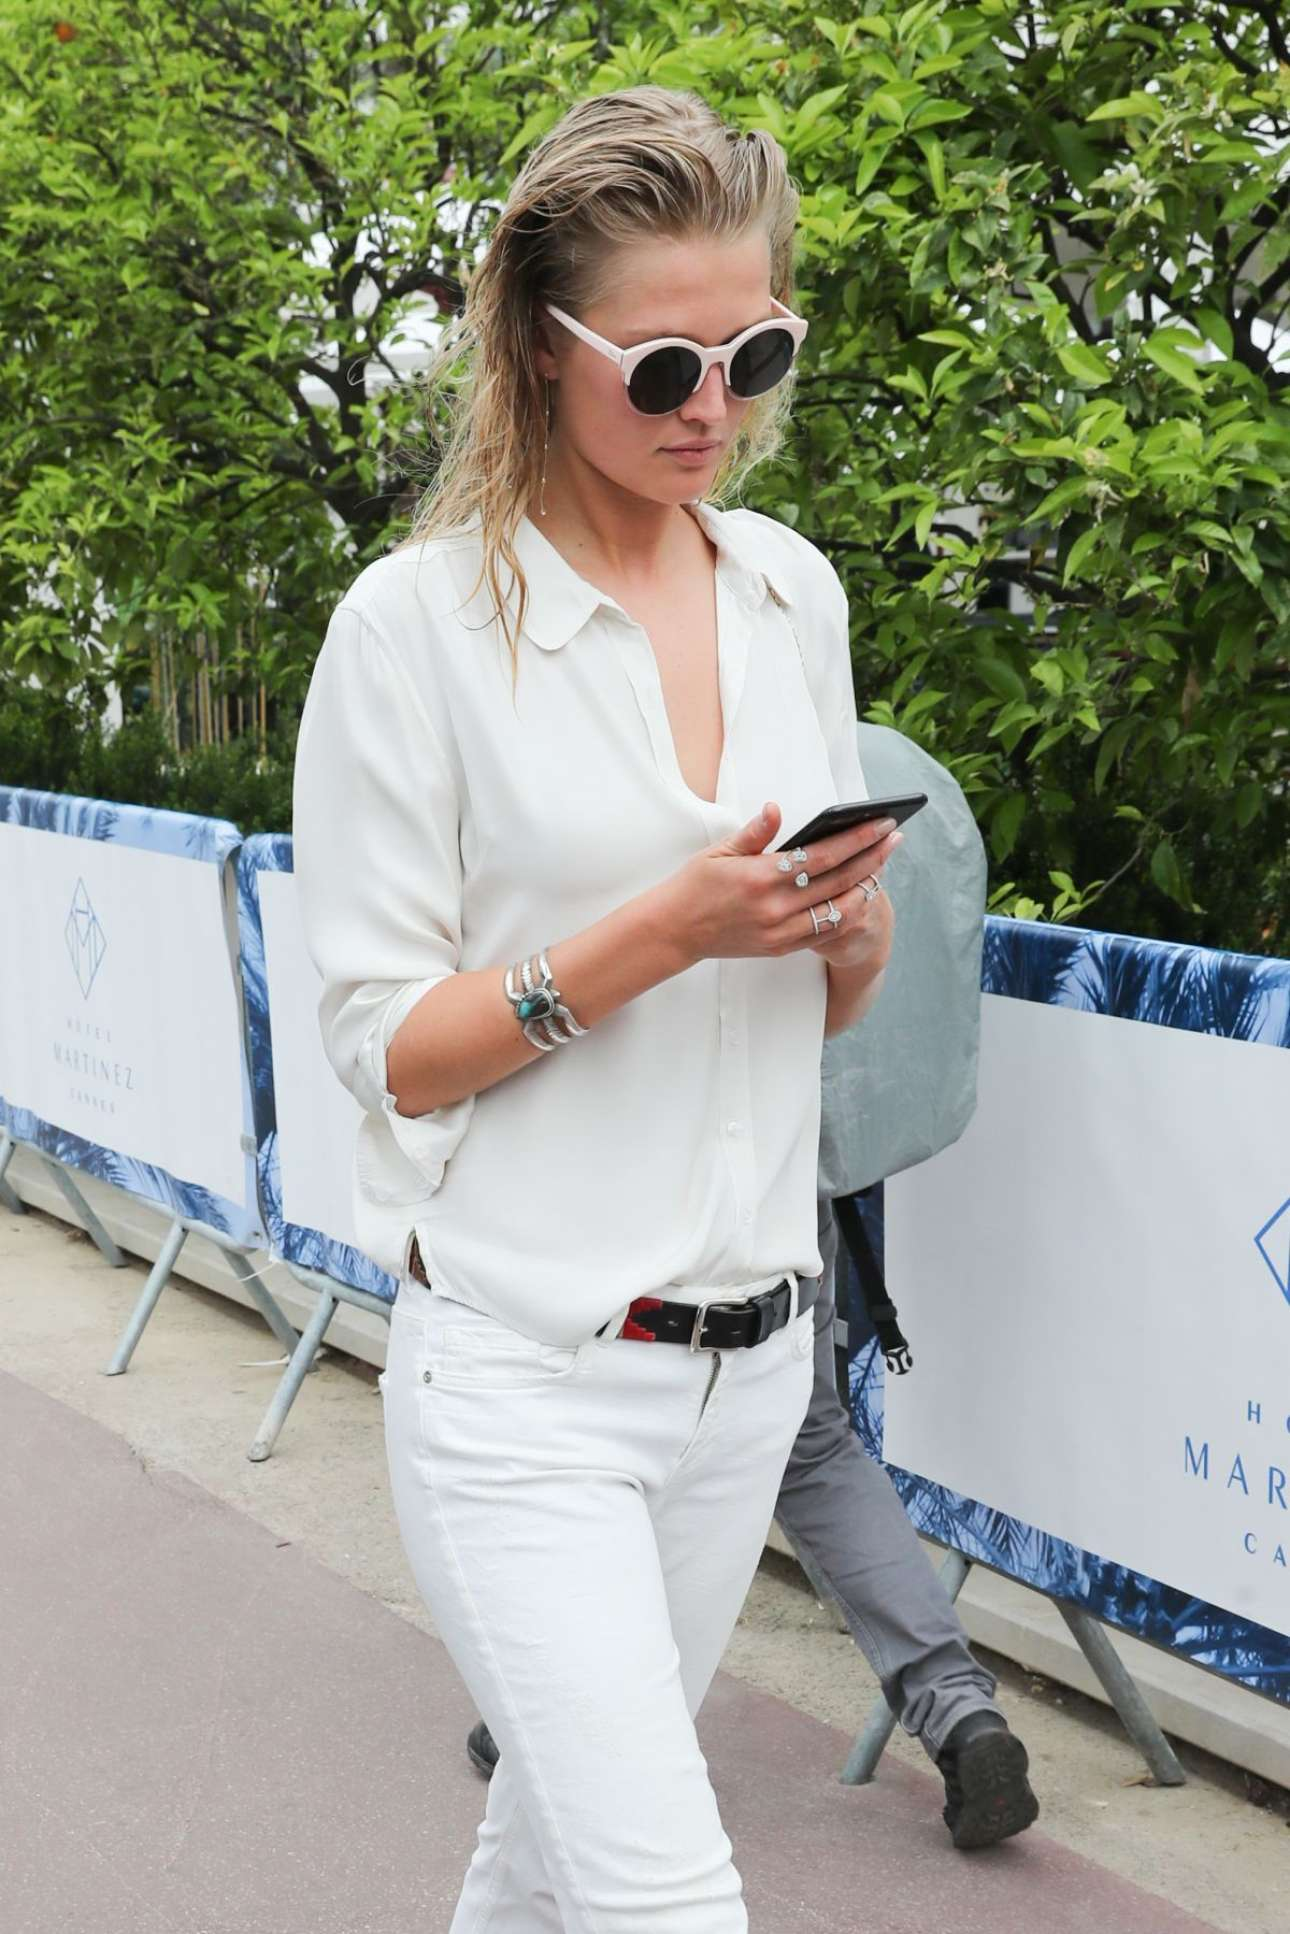 Toni Garrn – Spotted While Out In Cannes